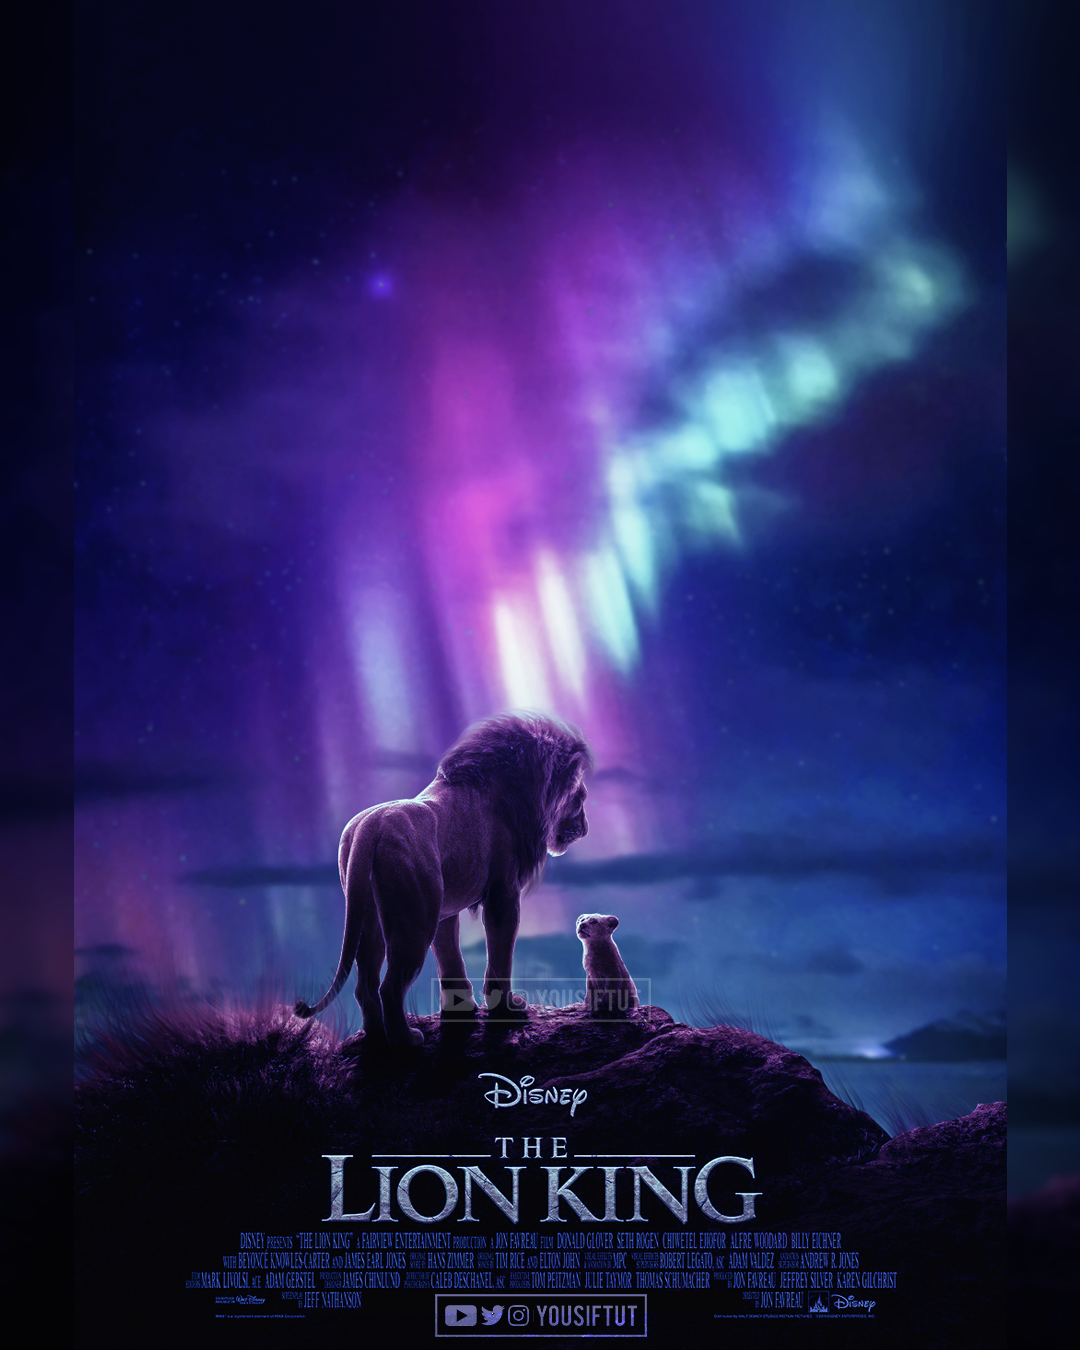 LION KING 2019 On Behance